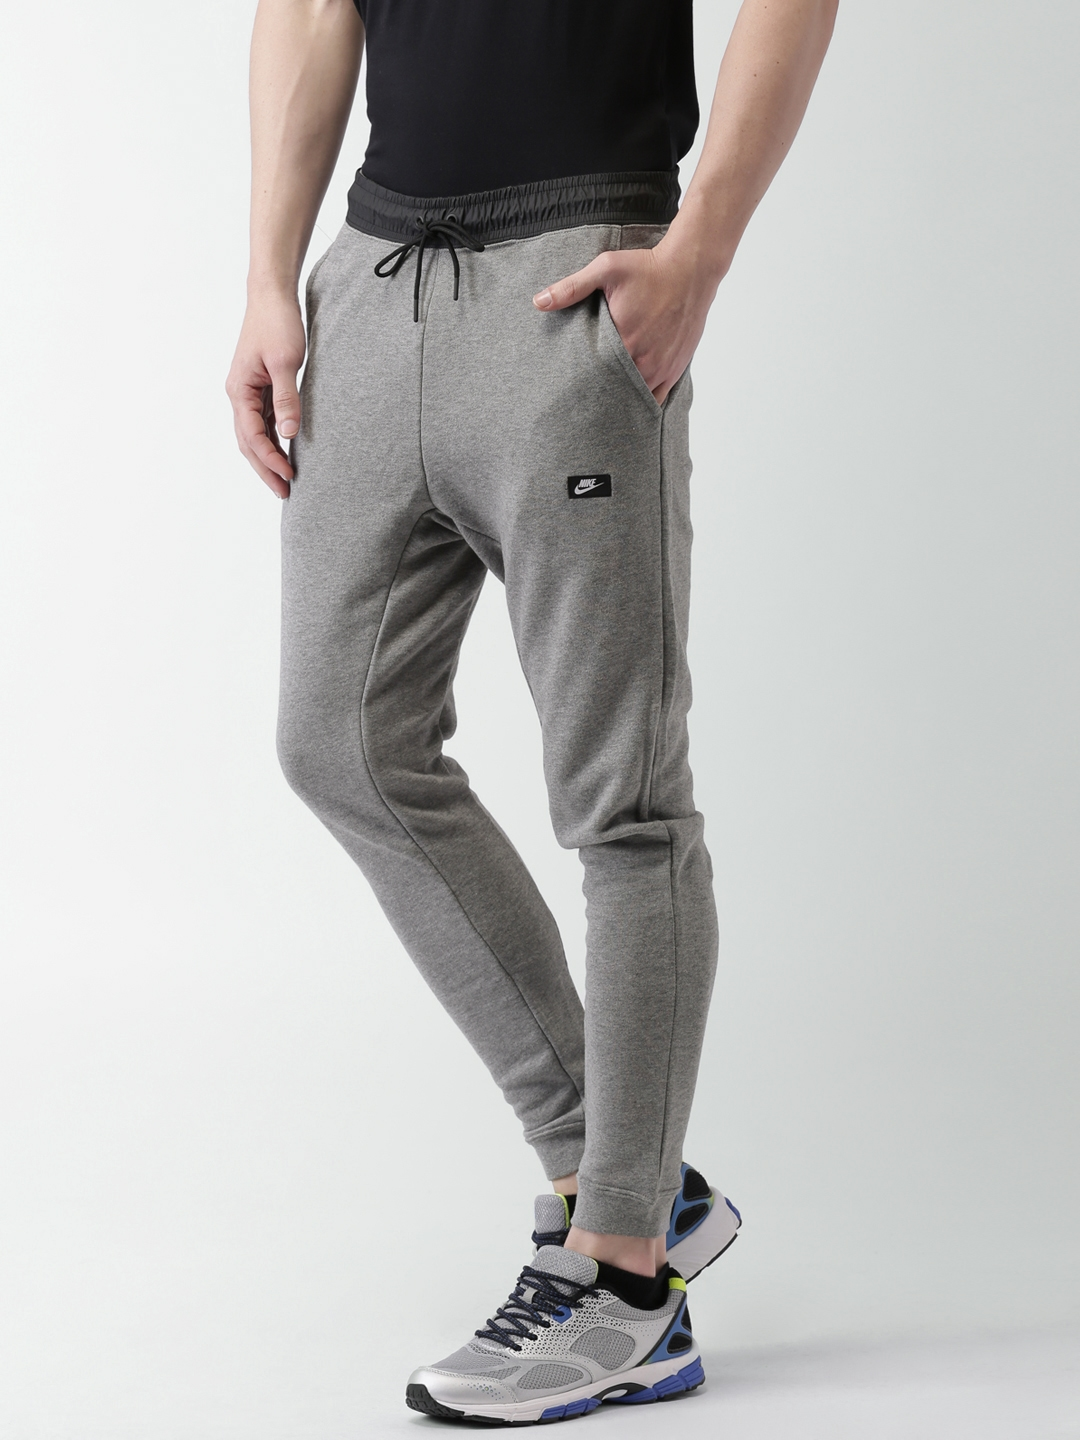 dfccd44726ce Buy Nike Grey Melange AS M NSW MODERN JOGGER FT Joggers - Track ...